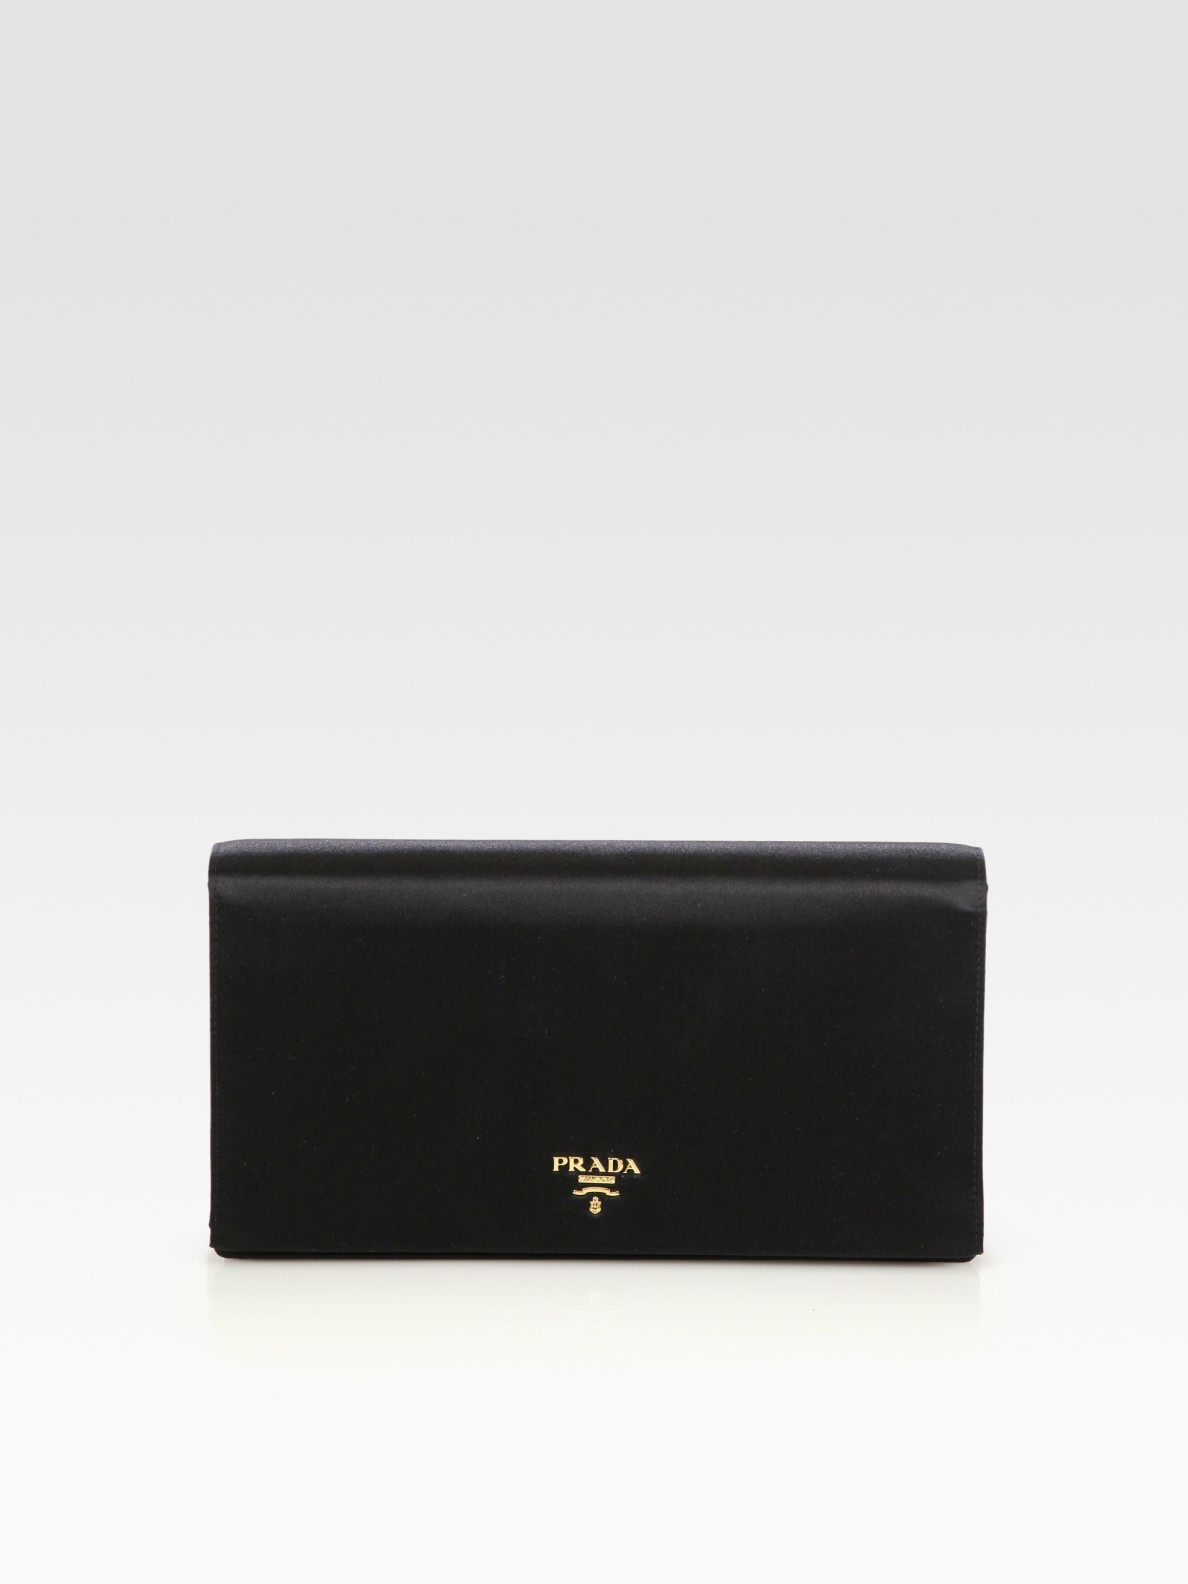 Prada Satin Clutch in Black | Lyst